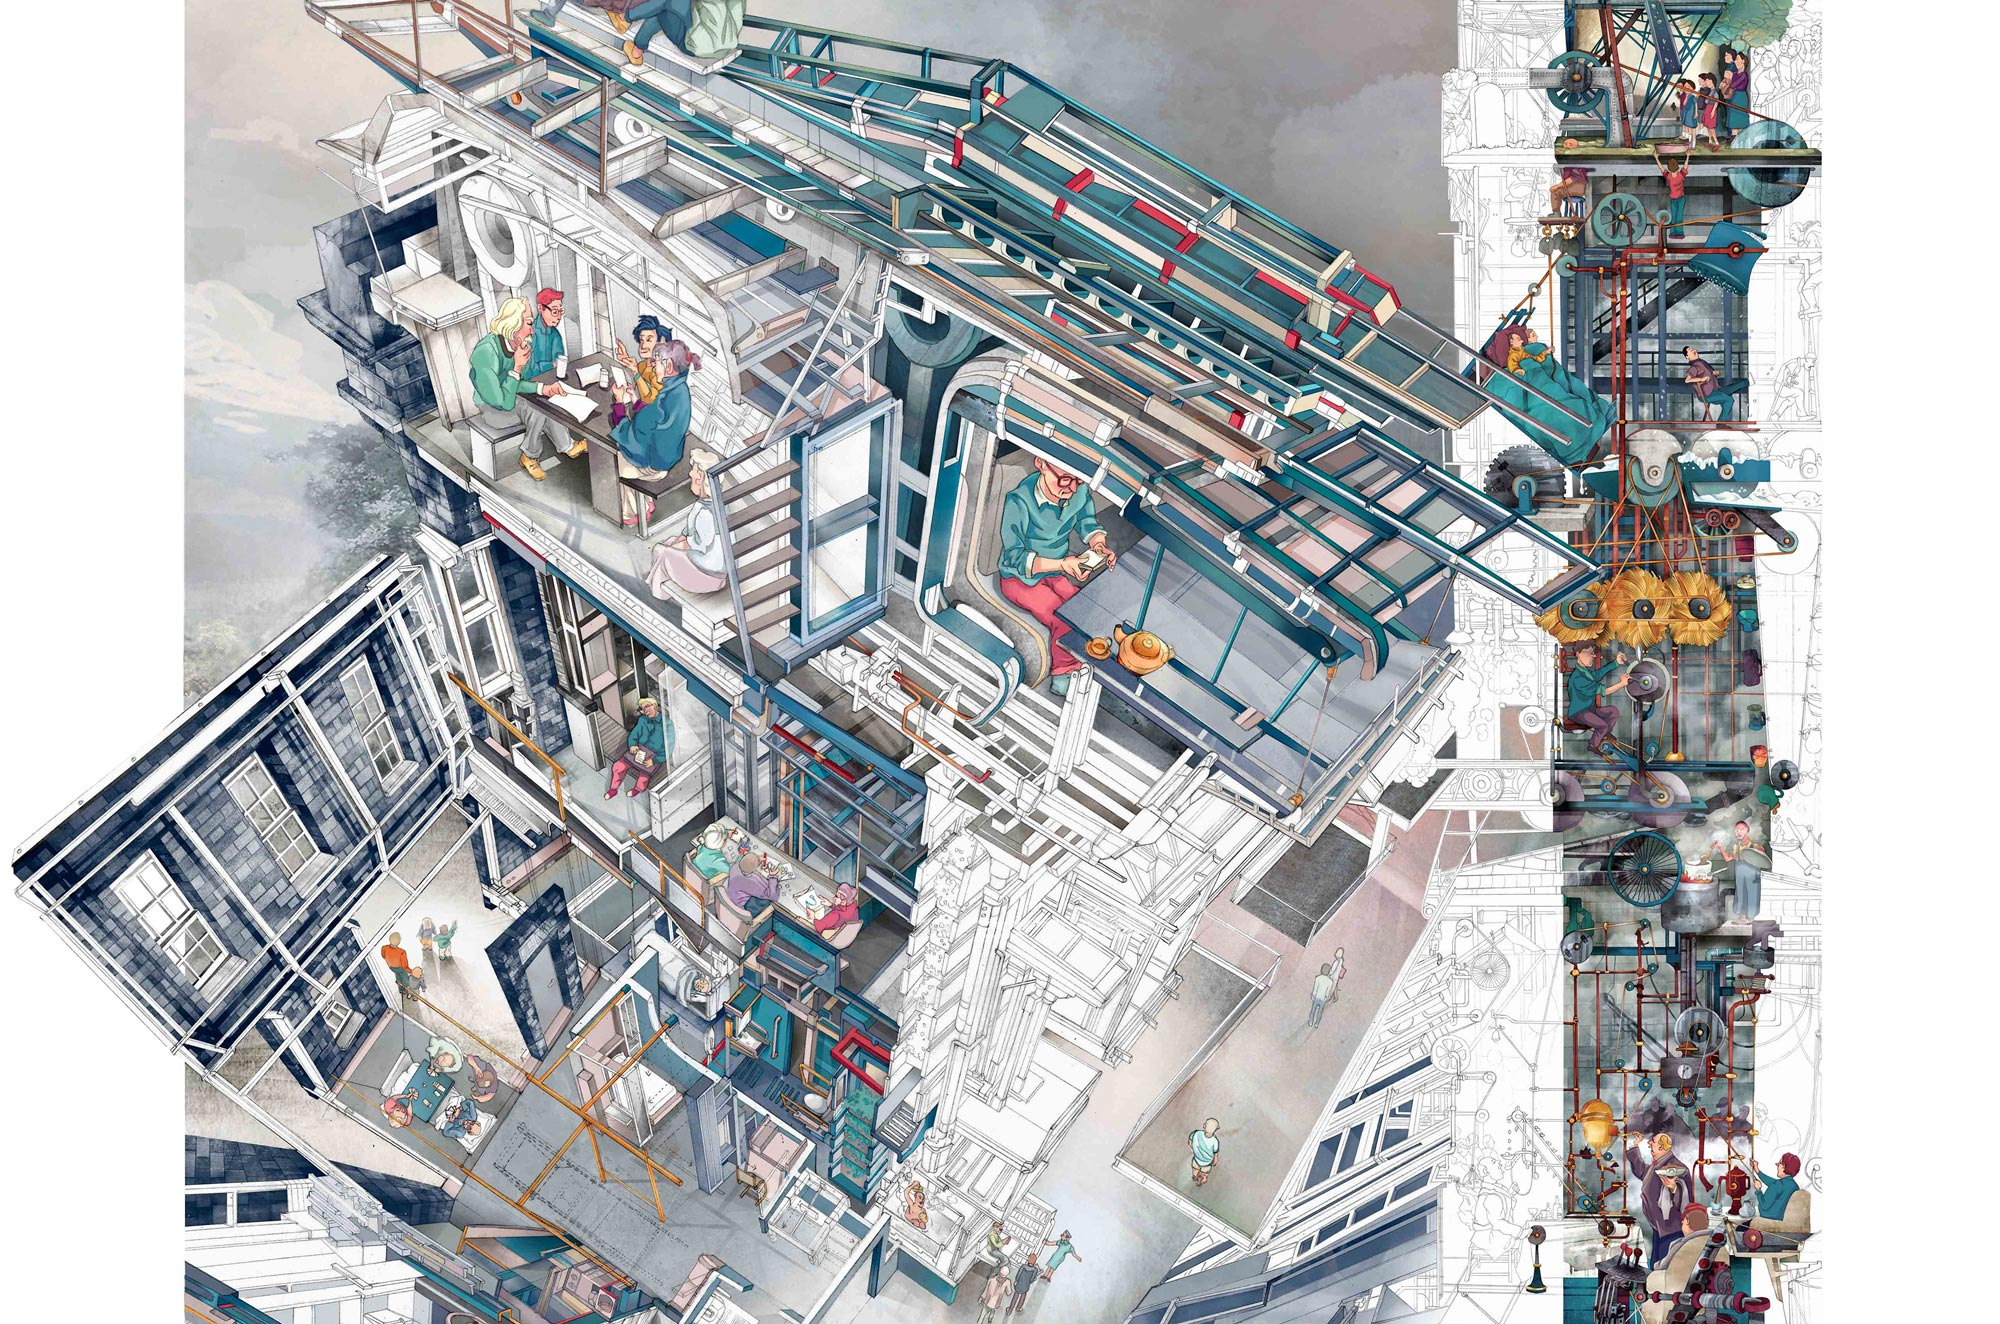 2000x1324 Winner Of The Inaugural Architecture Drawing Prize Announced